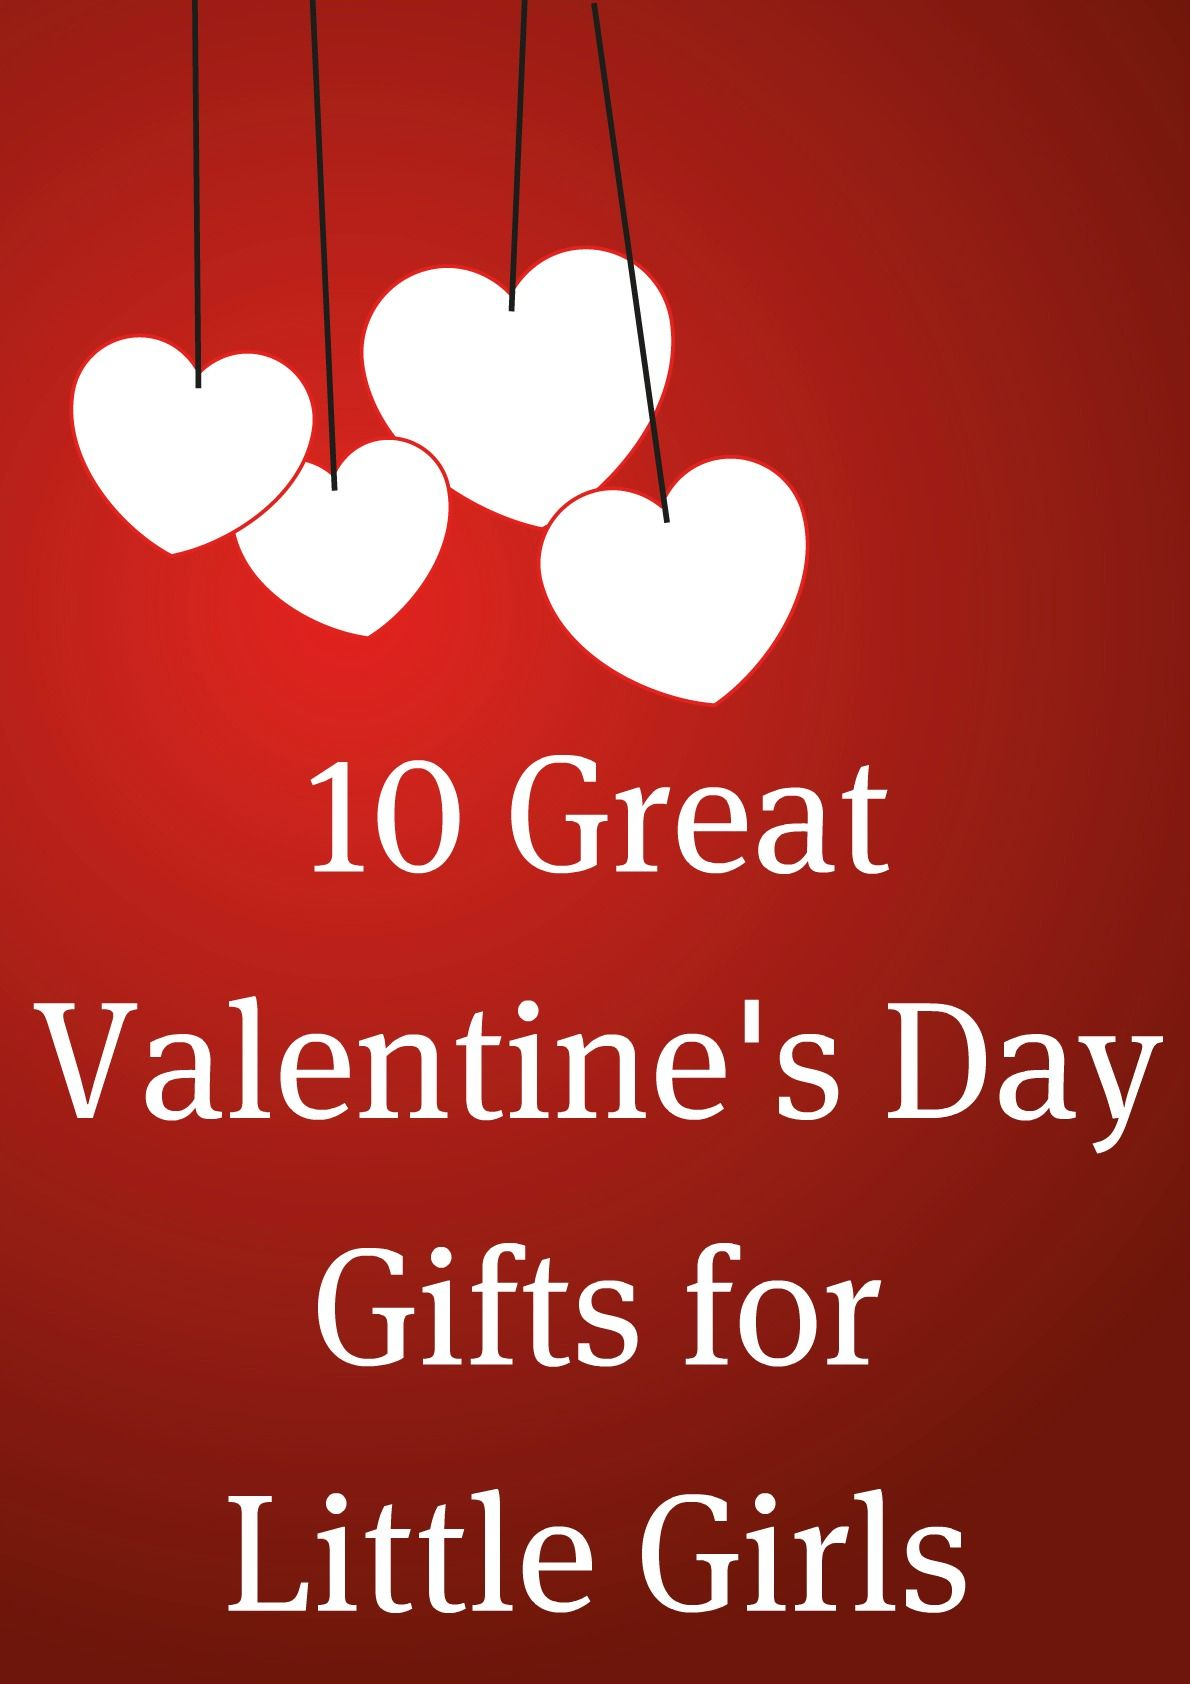 10 great valentines day gifts for little girls